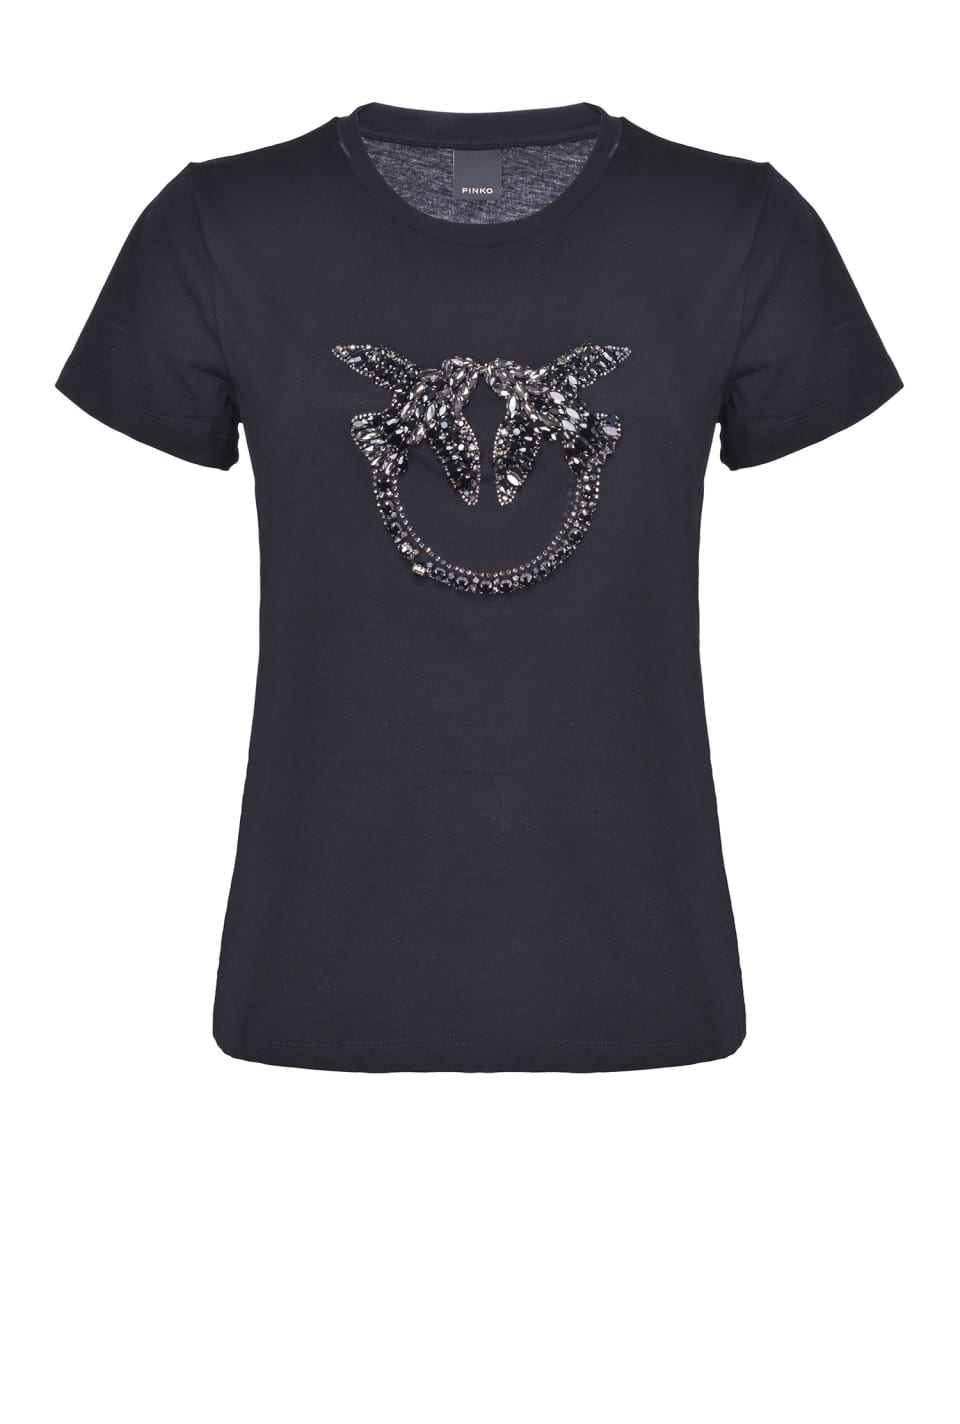 Shiny Love Birds embroidery T-shirt - Pinko